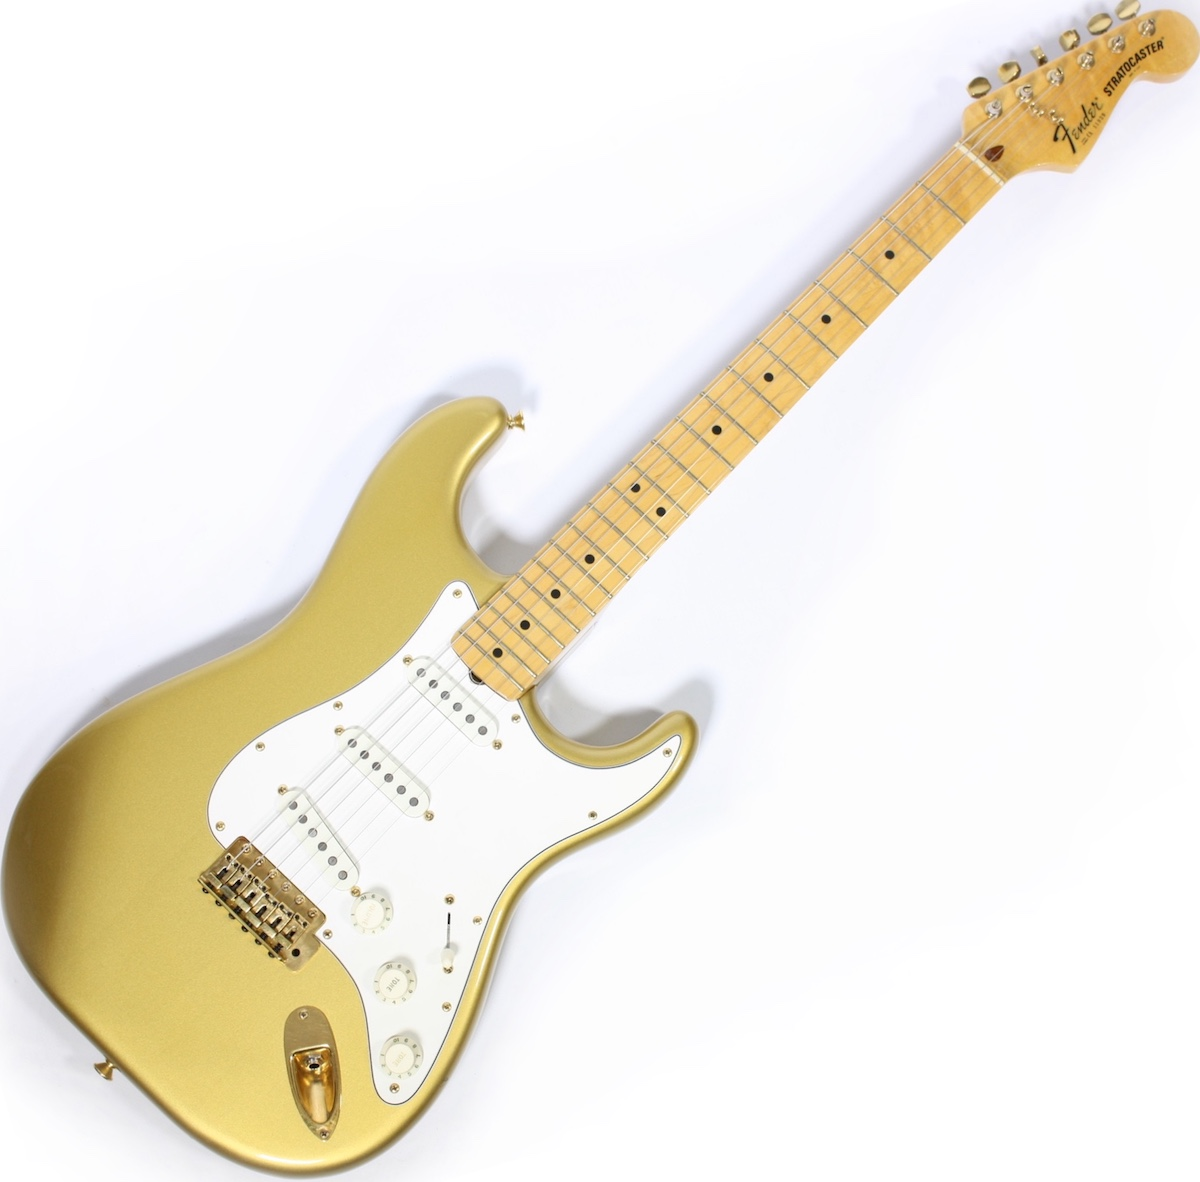 1983 Fender Stratocaster Dan Smith Aztec Gold finish